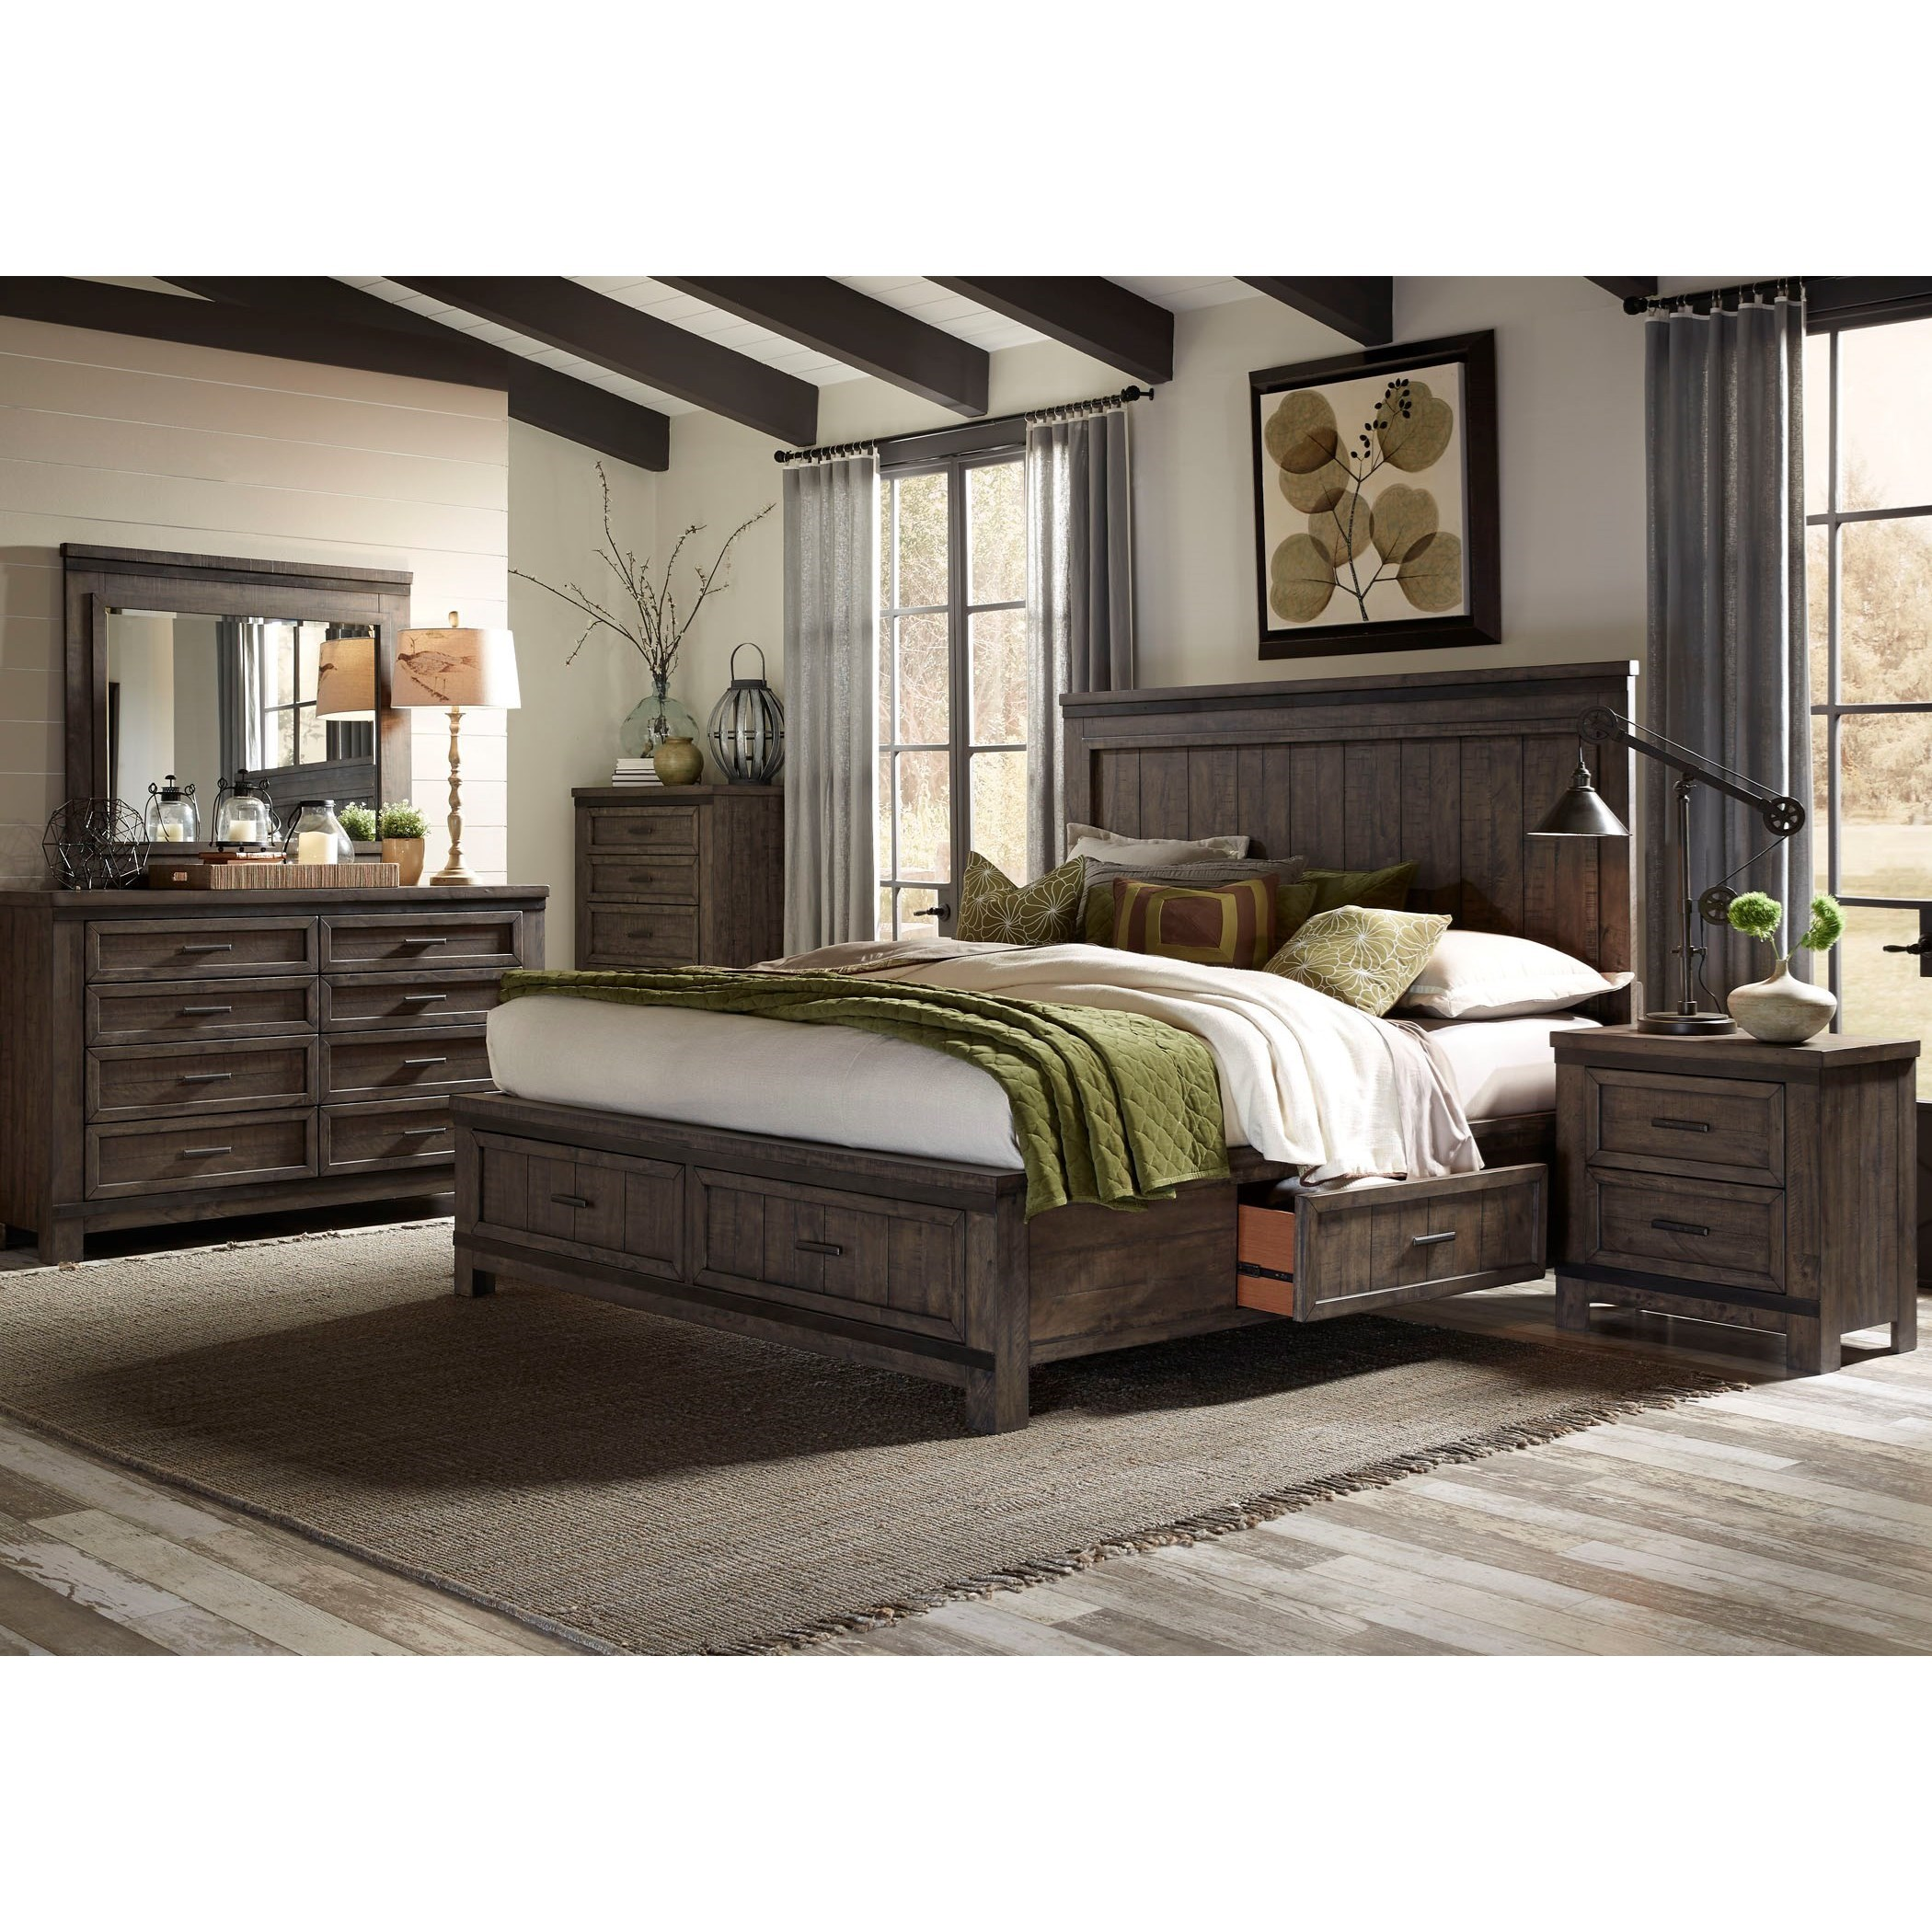 Liberty Furniture Thornwood Hills 759 Br Q2sdmcn Queen Bedroom Group Furniture And